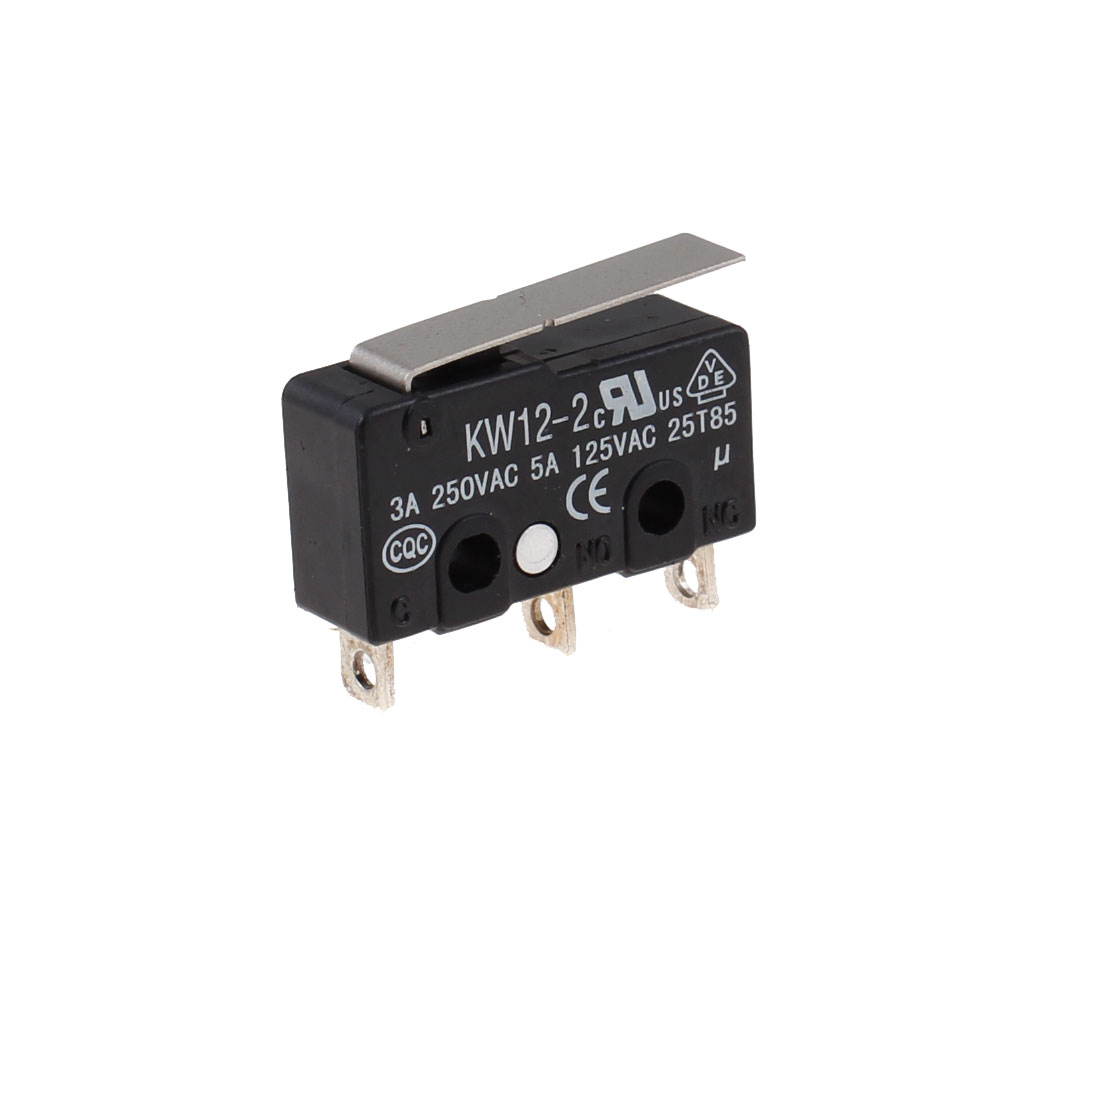 Momentary Lever Actuator Miniature Micro Switch 3A 250VAC 5A 125VAC